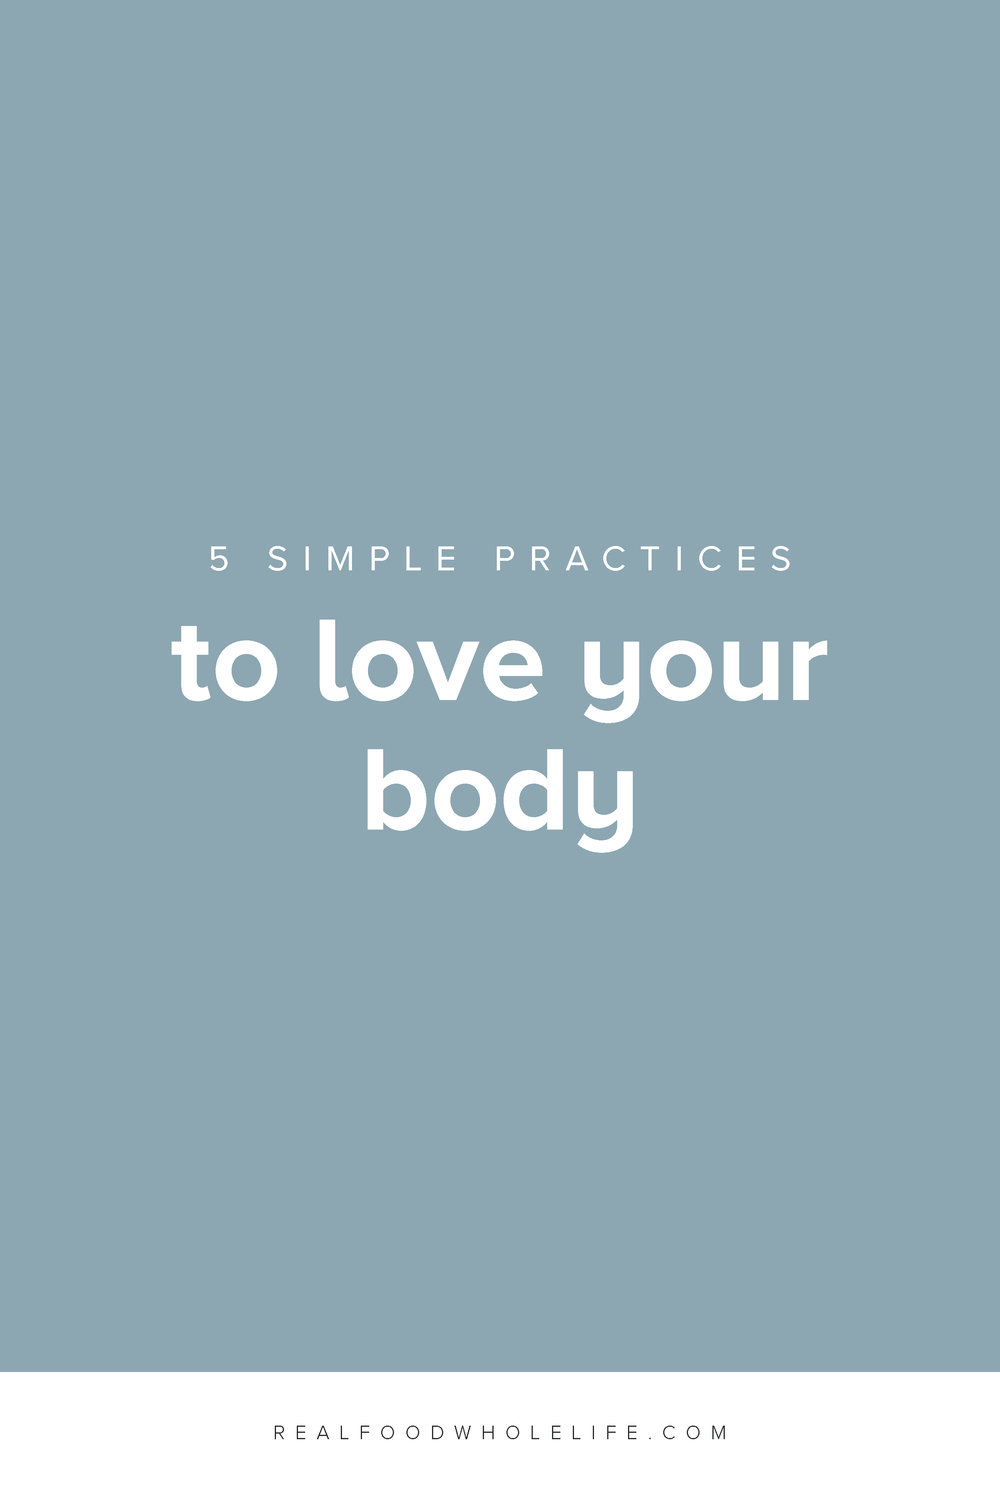 Cultivating body love is a way to find more body acceptance, improve body image, and learn how to be comfortable in your own skin.  #realfoodwholelife #feelgoodeffect #gentlewellness #bodylove #wellness #gentleisthenewperfect #acceptance